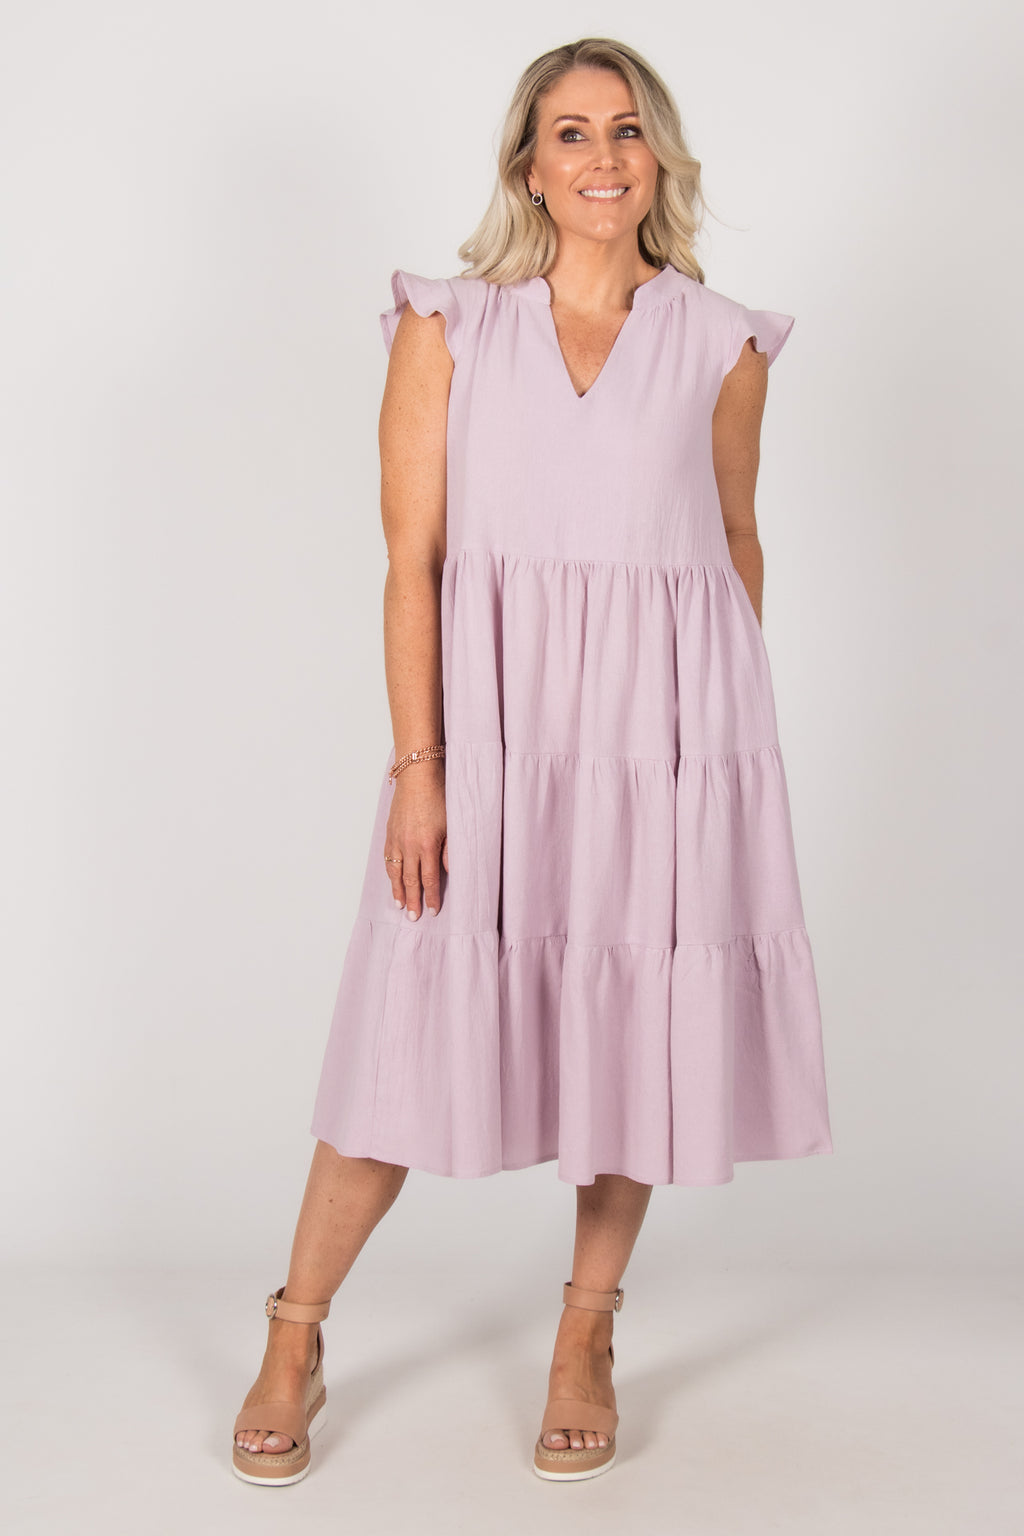 Blissful Dress in Lilac